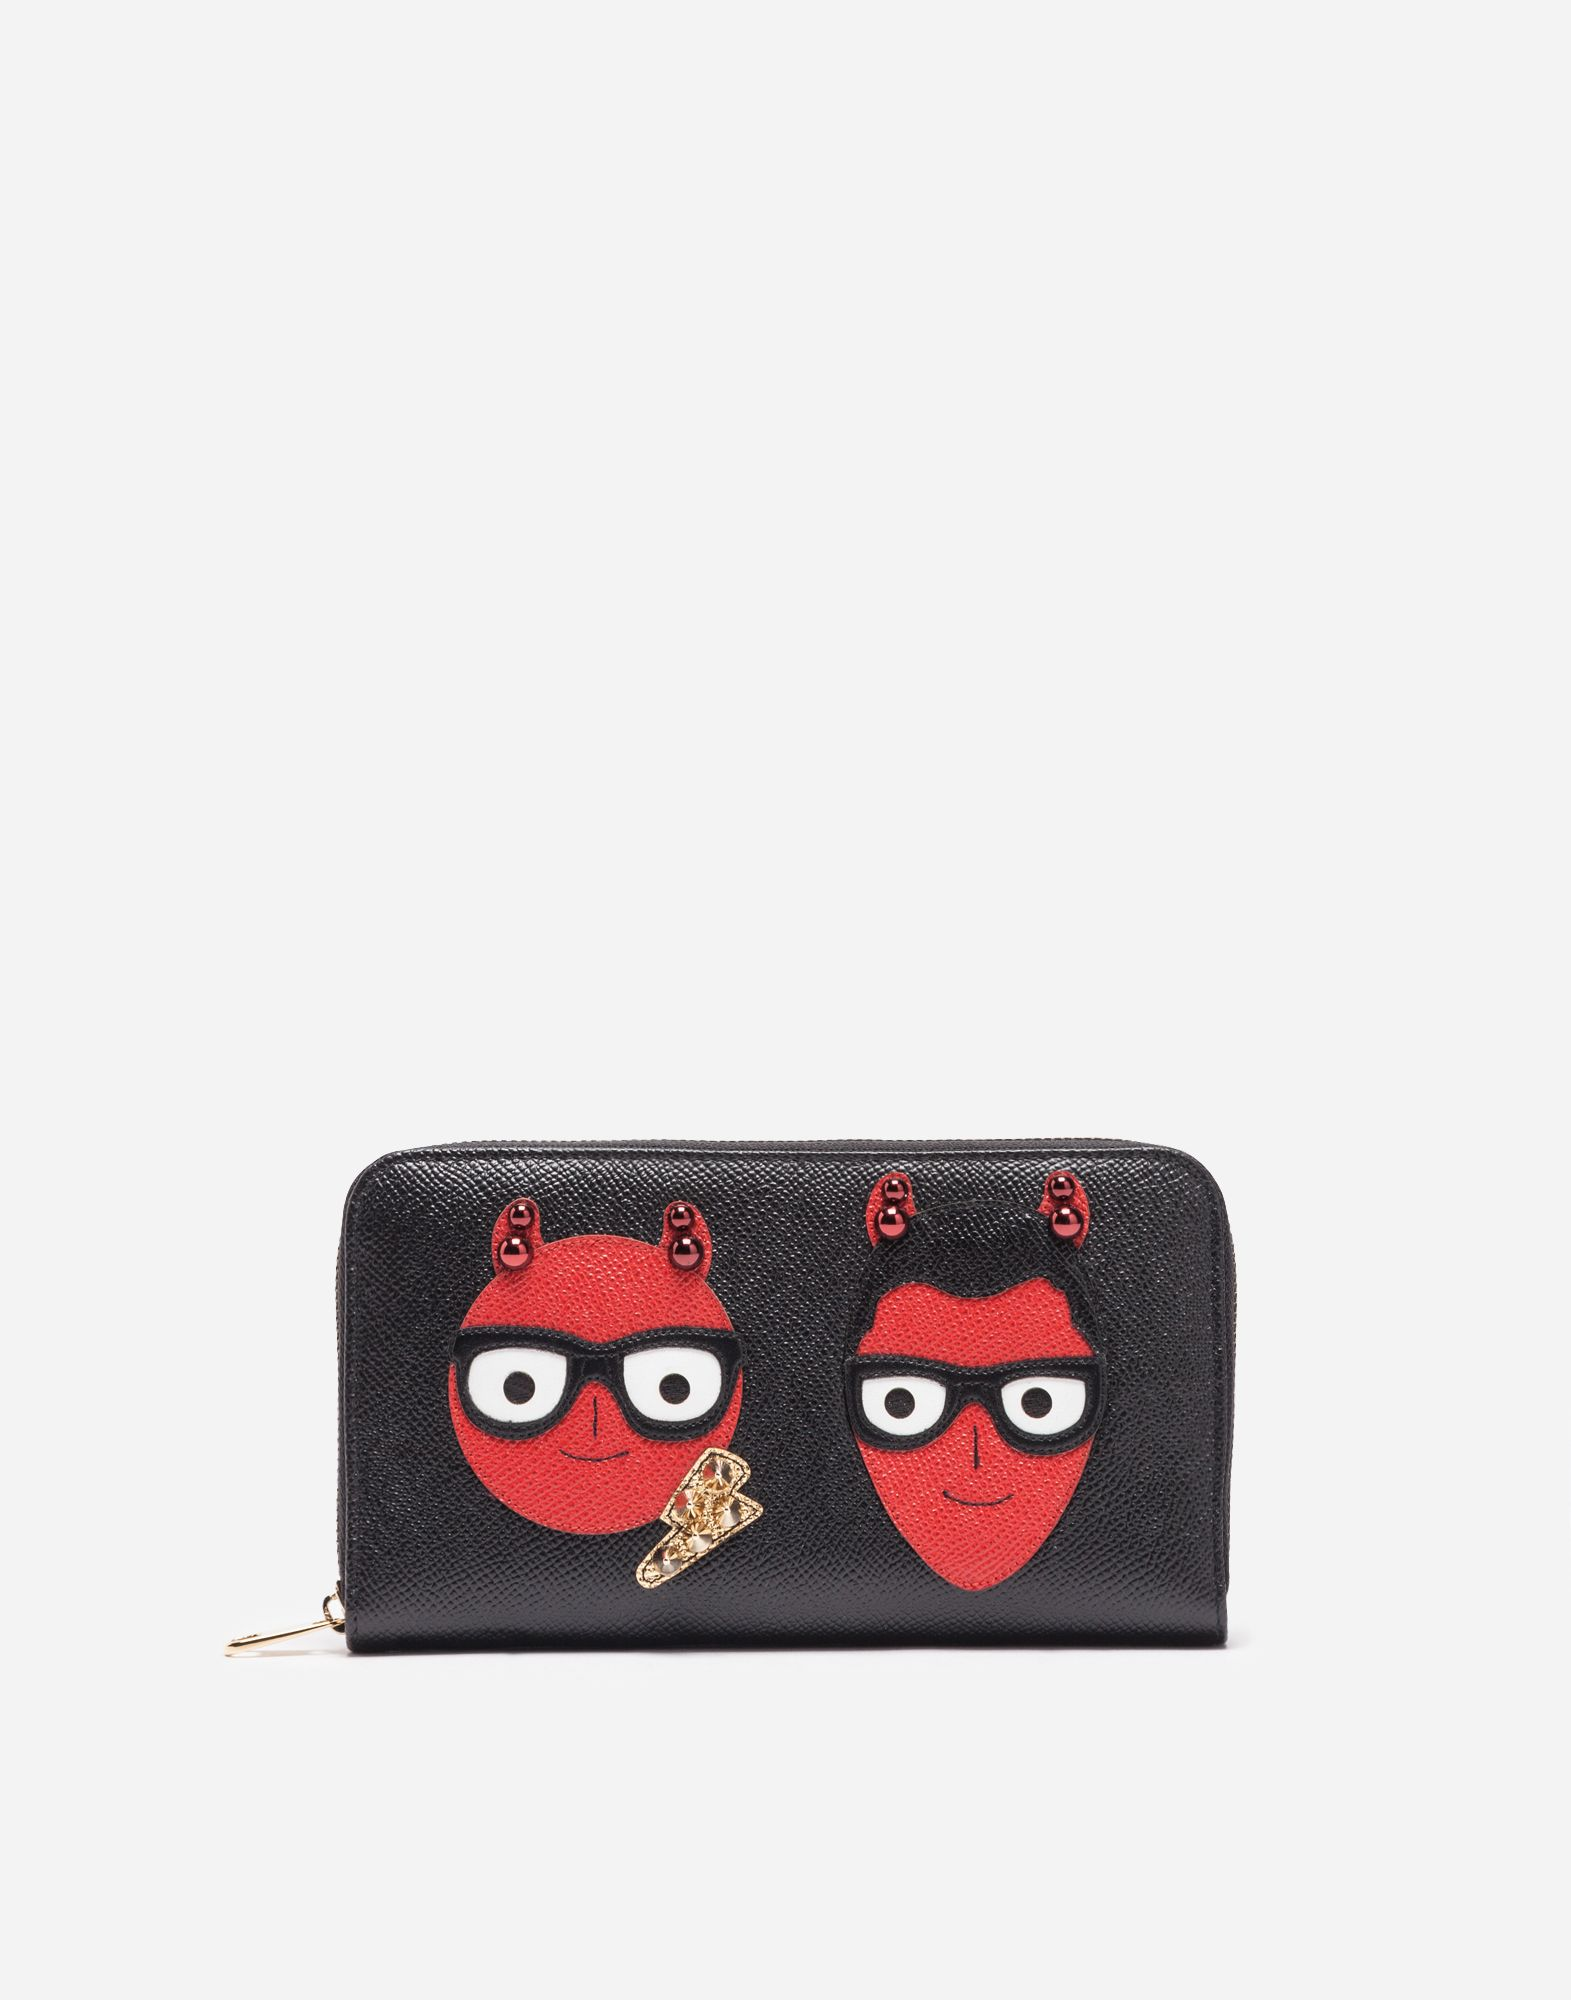 13eb5437f4 Dolce & Gabbana ZIP-AROUND LEATHER WALLET WITH PATCHES OF THE DESIGNERS $845